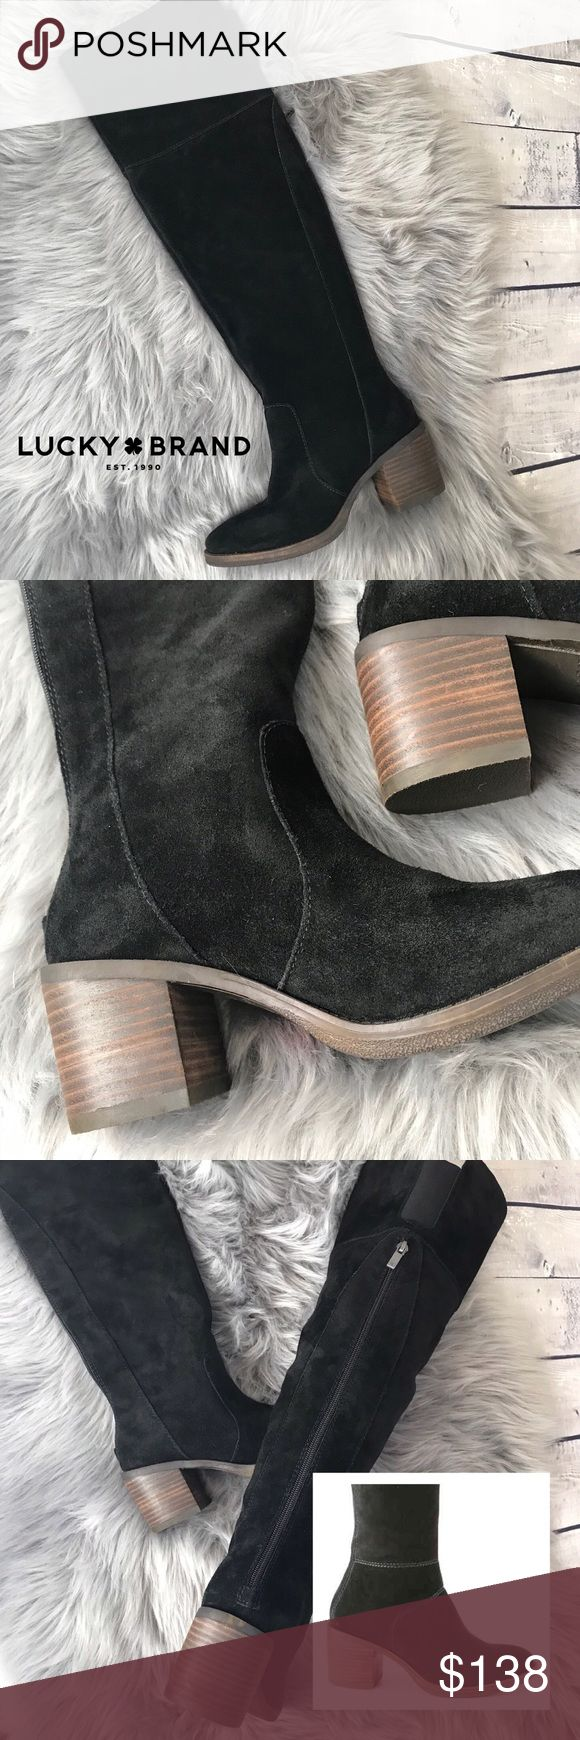 New! suede over-the-knee riding boot